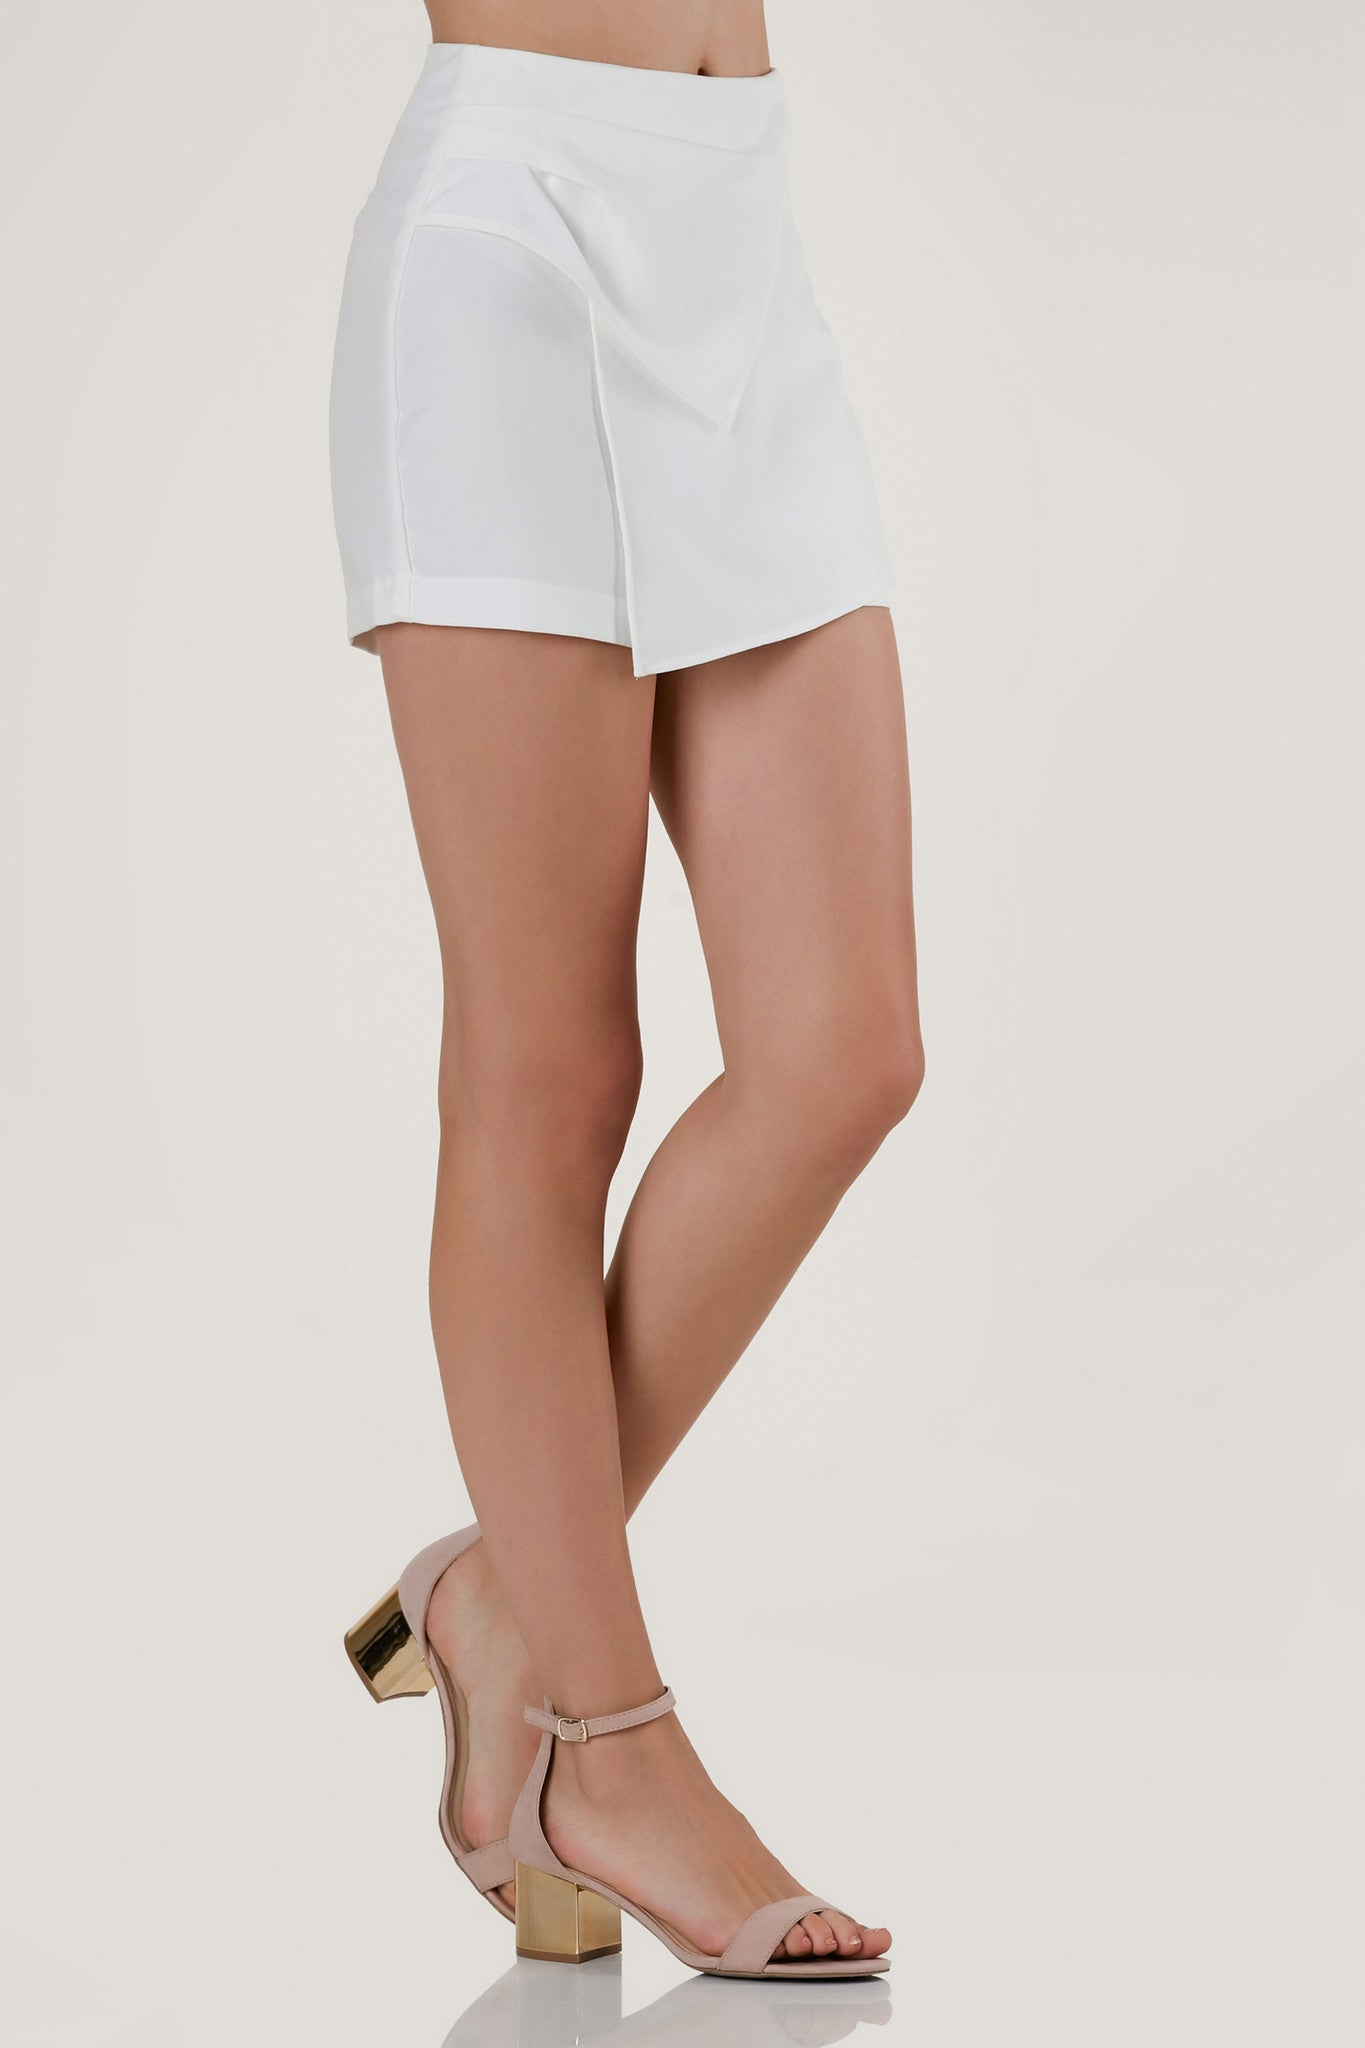 Chic high rise envelope shorts with asymmetrical hem finish and hidden back zip closure.